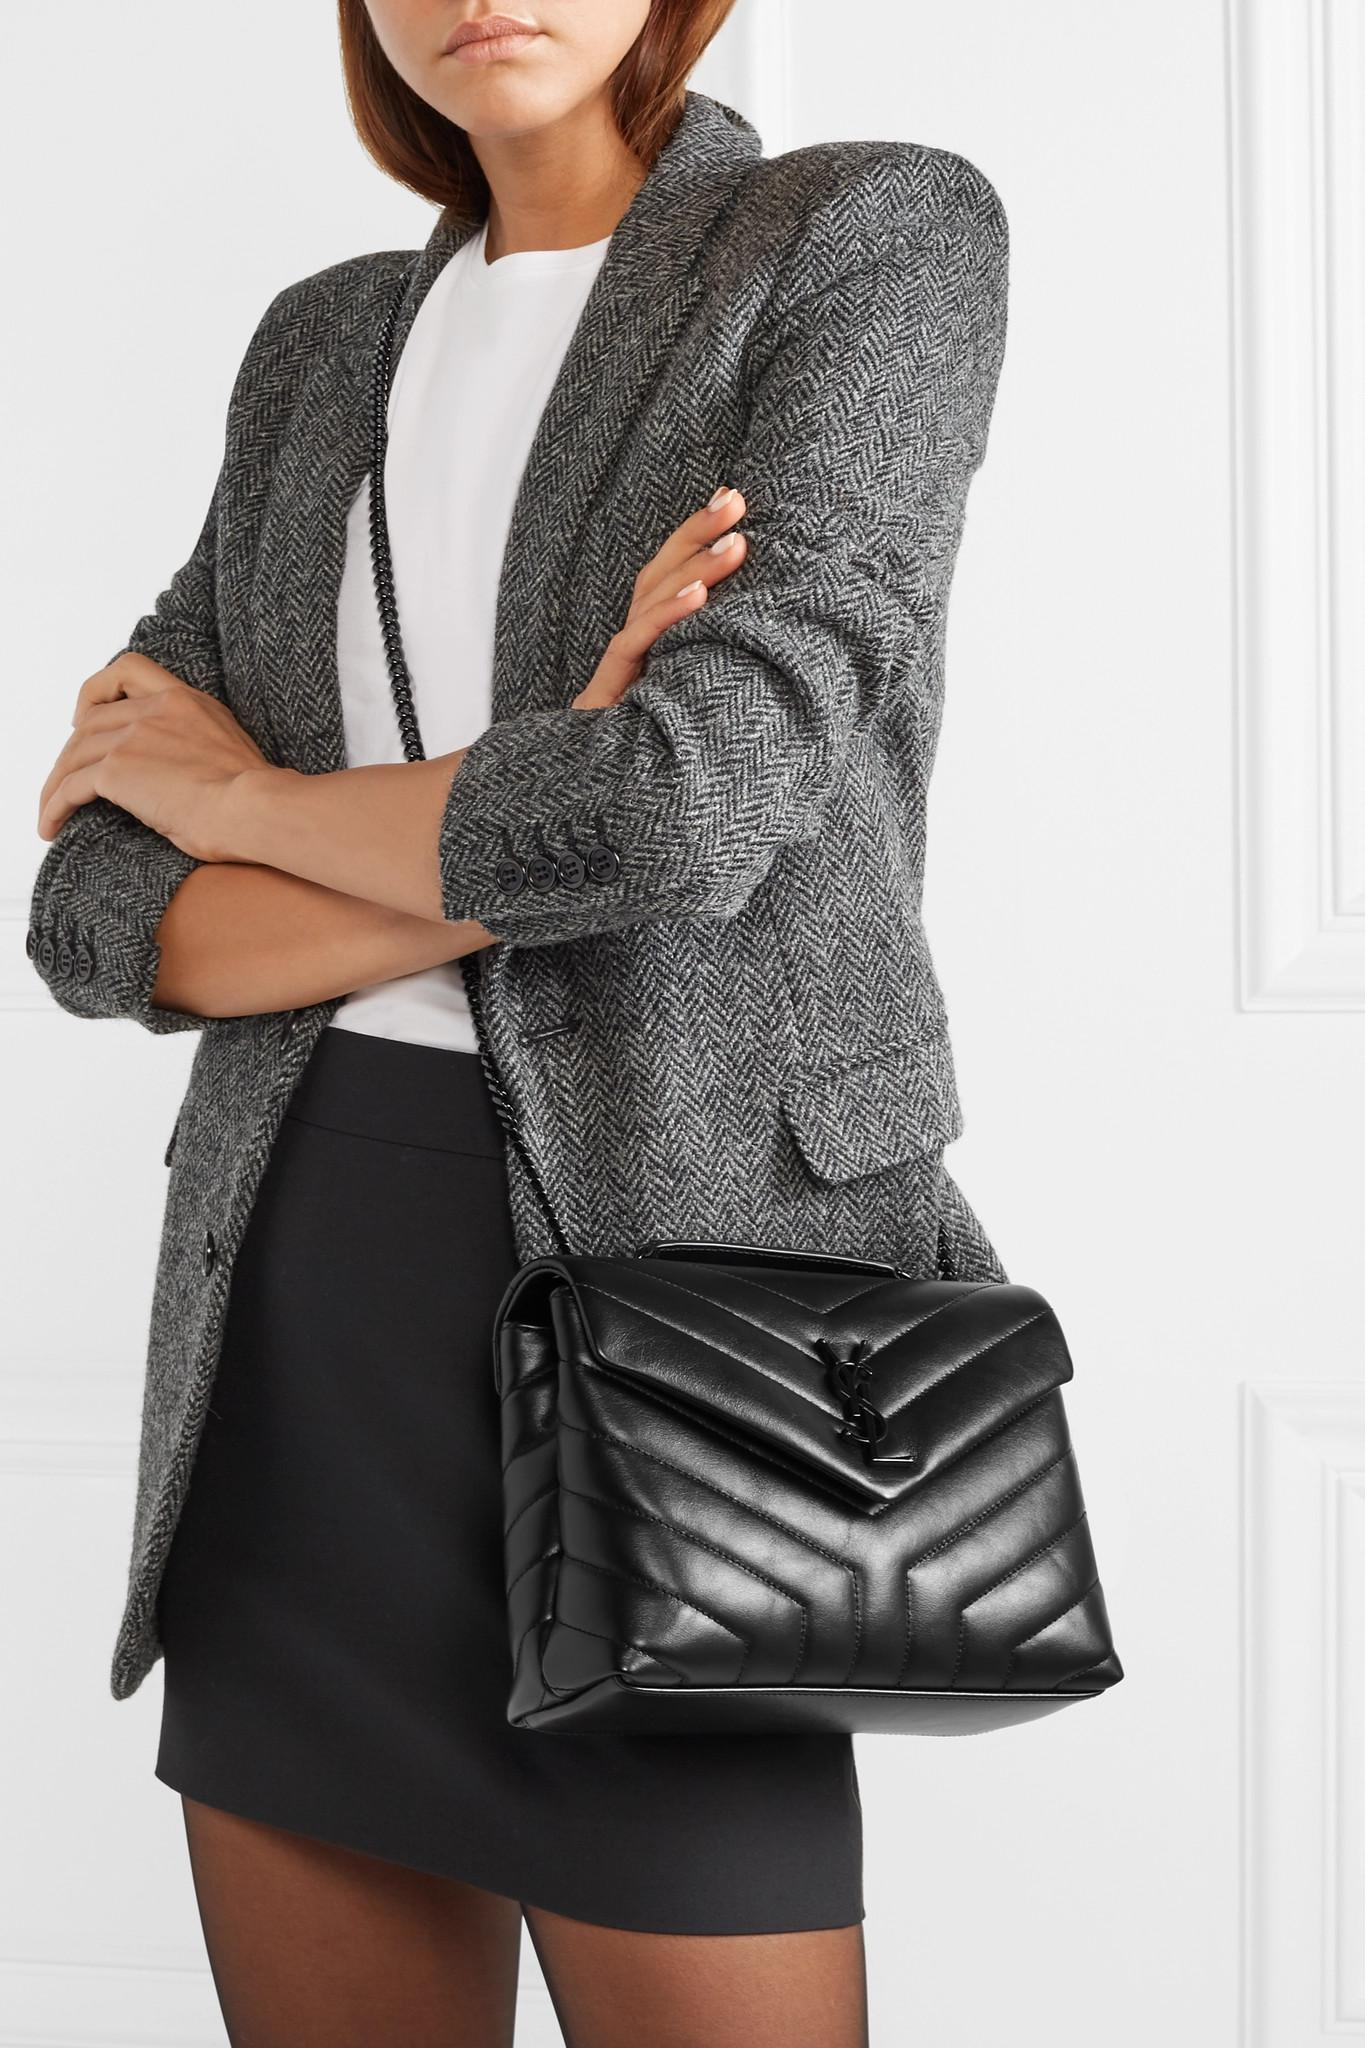 7a241b19749 Saint Laurent - Black Loulou Small Quilted Leather Shoulder Bag - Lyst.  View fullscreen